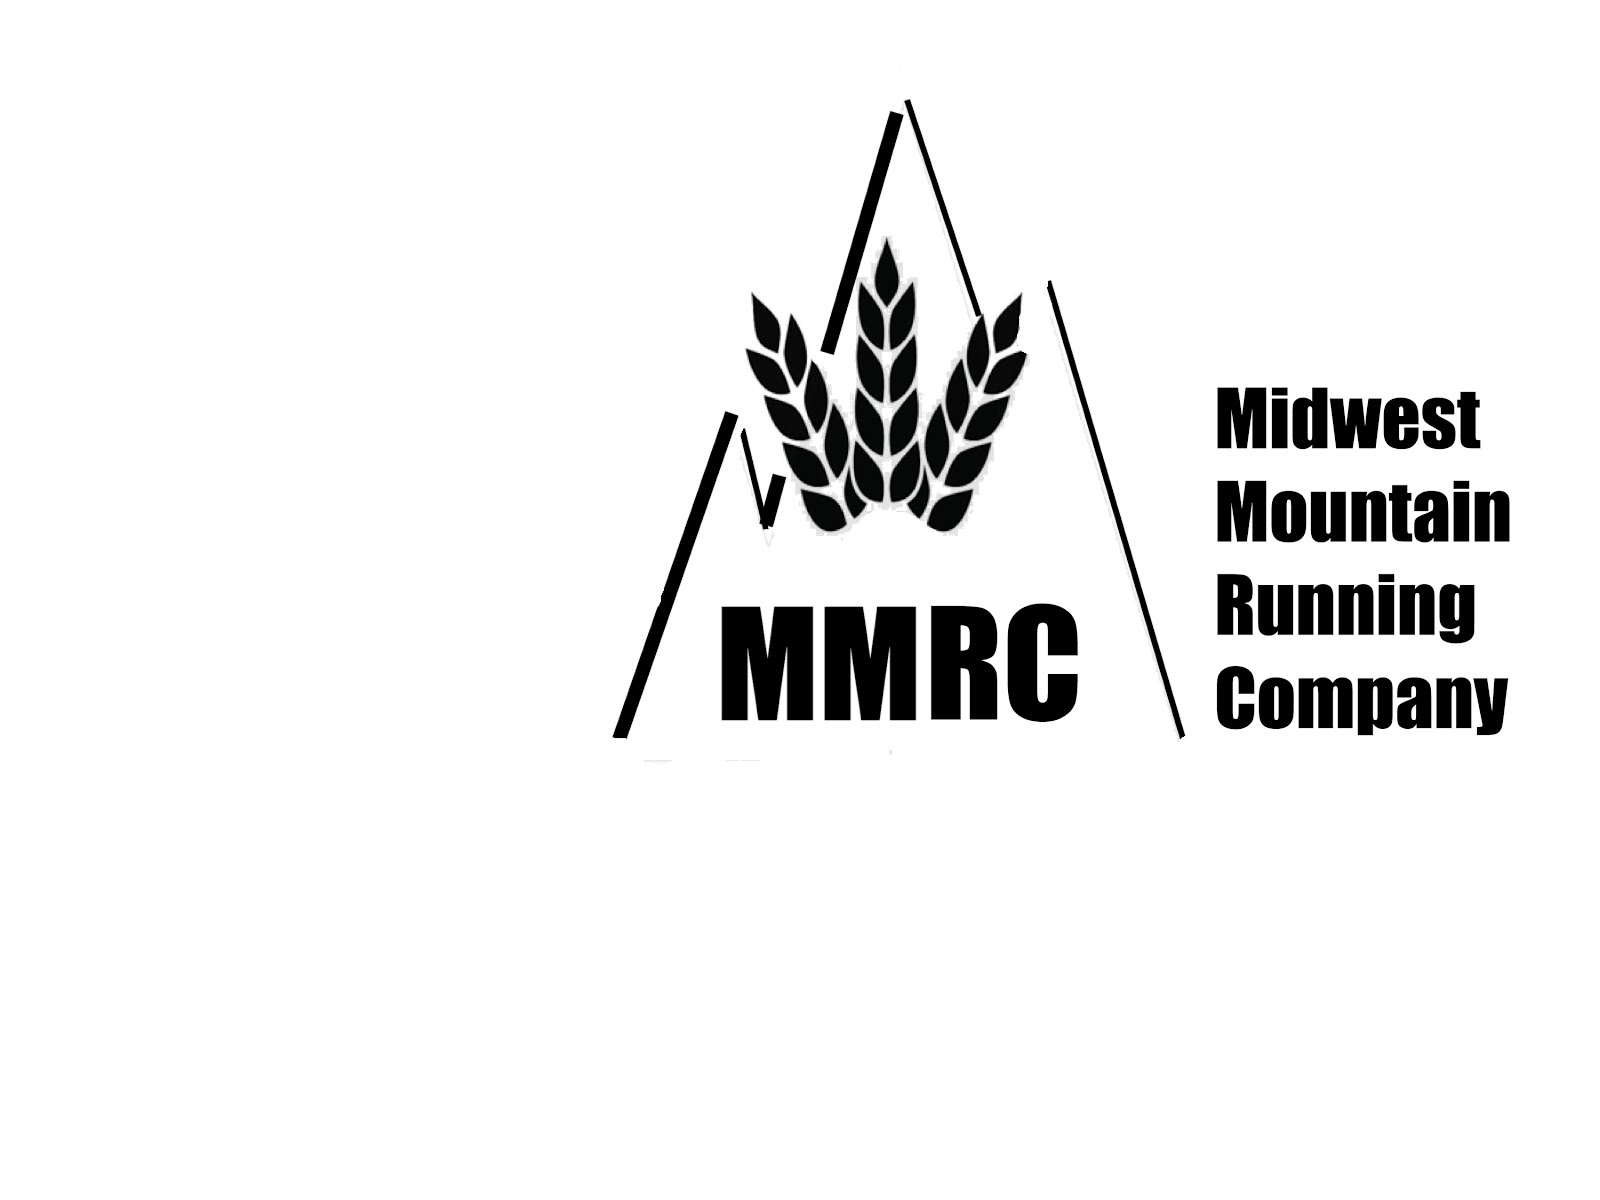 Midwest Mountain Running Co